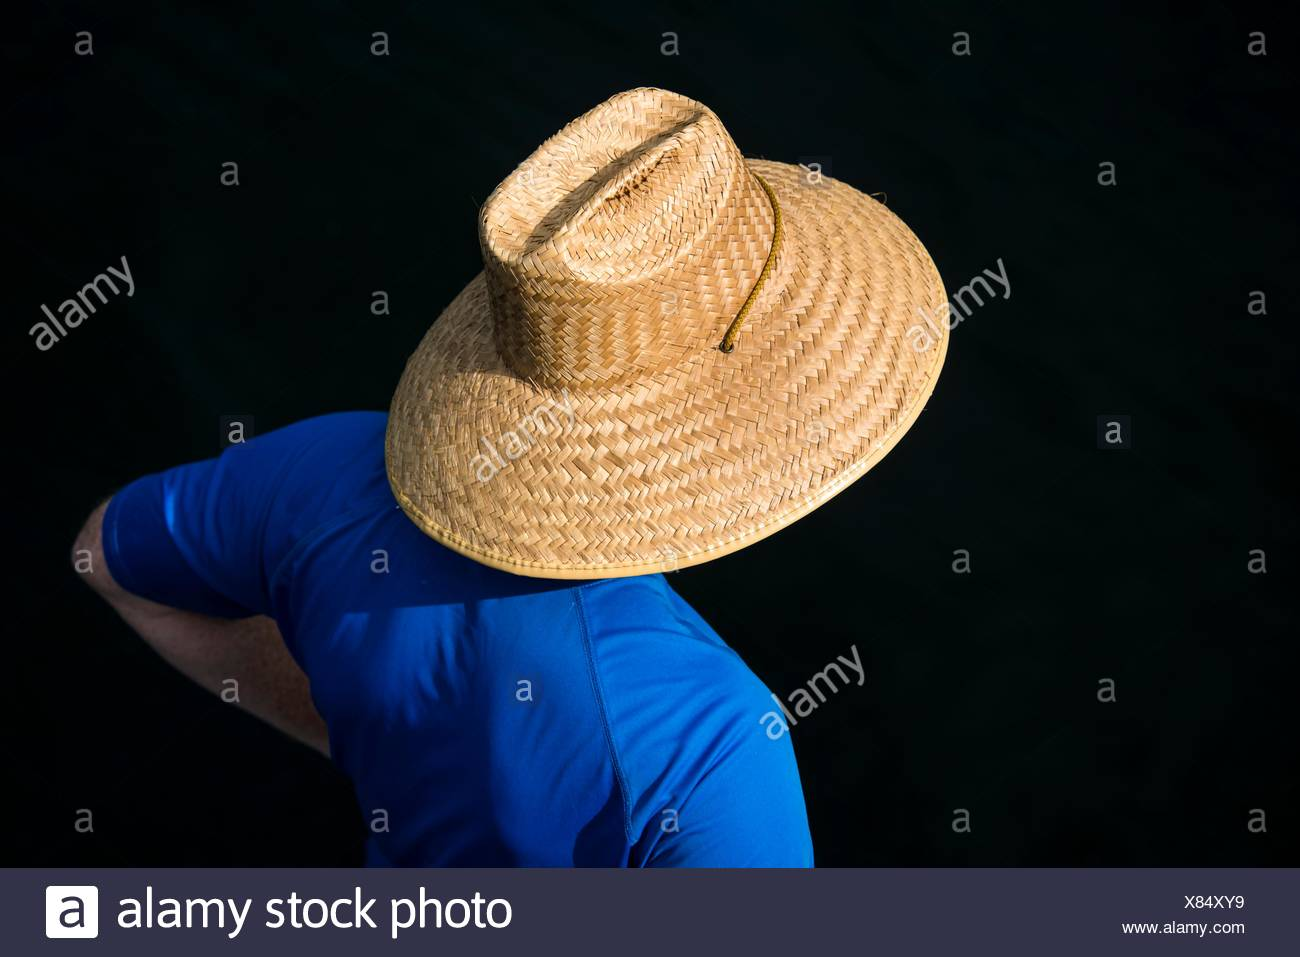 Brim Stock Photos   Brim Stock Images - Alamy 49fafbbb88c8